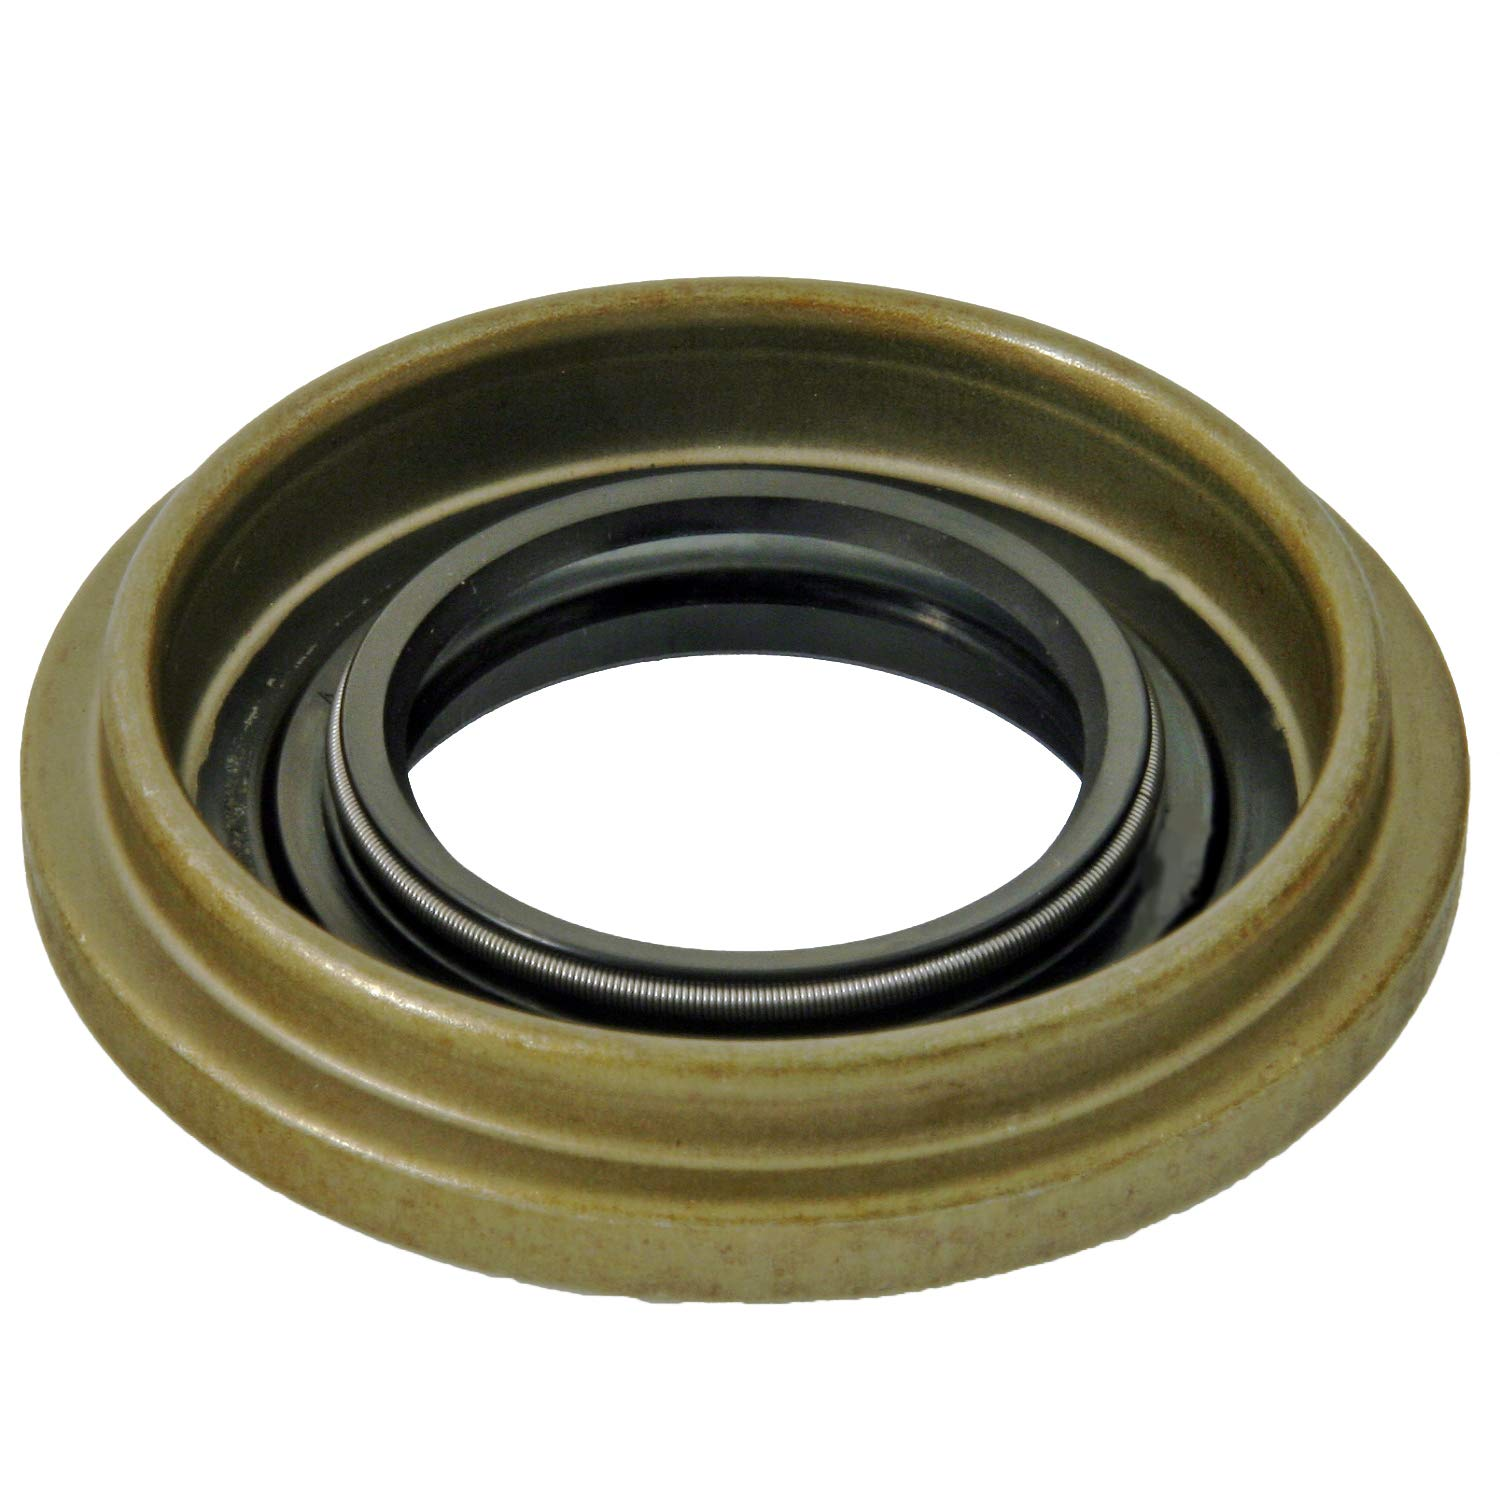 ACDelco 5778 Advantage Crankshaft Front Oil Seal